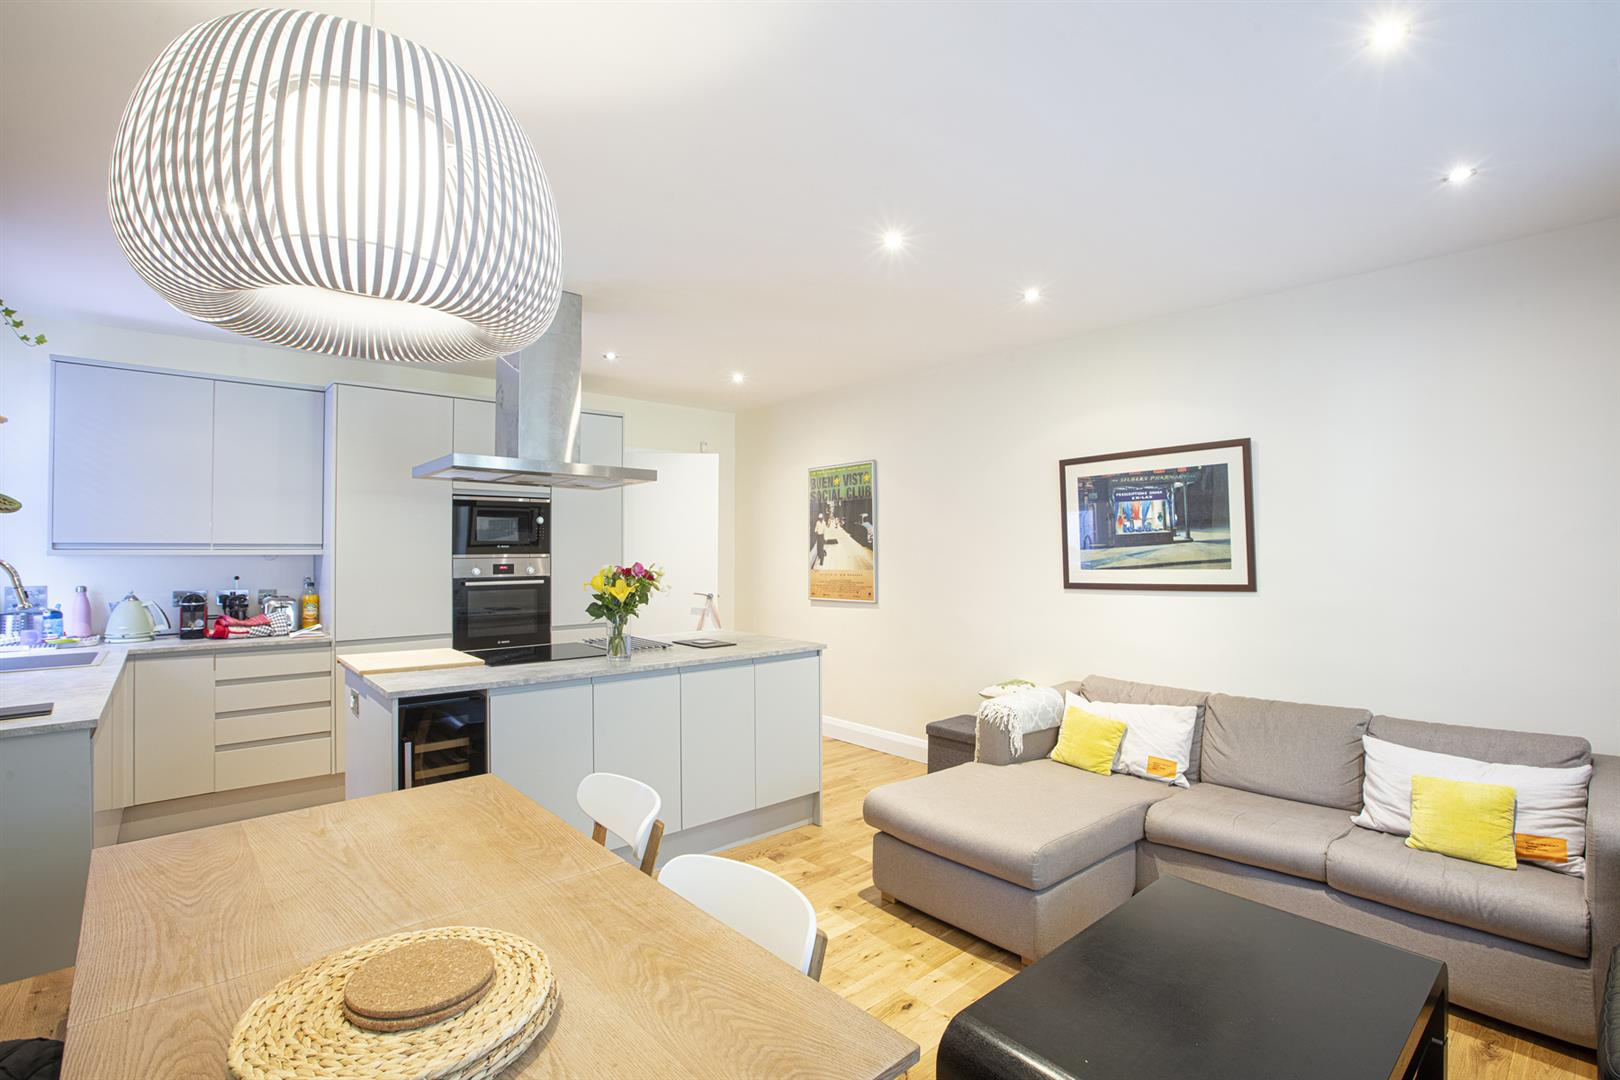 Flat - Conversion For Sale in Crystal Palace Park Road, Sydenham, SE26 698 view11